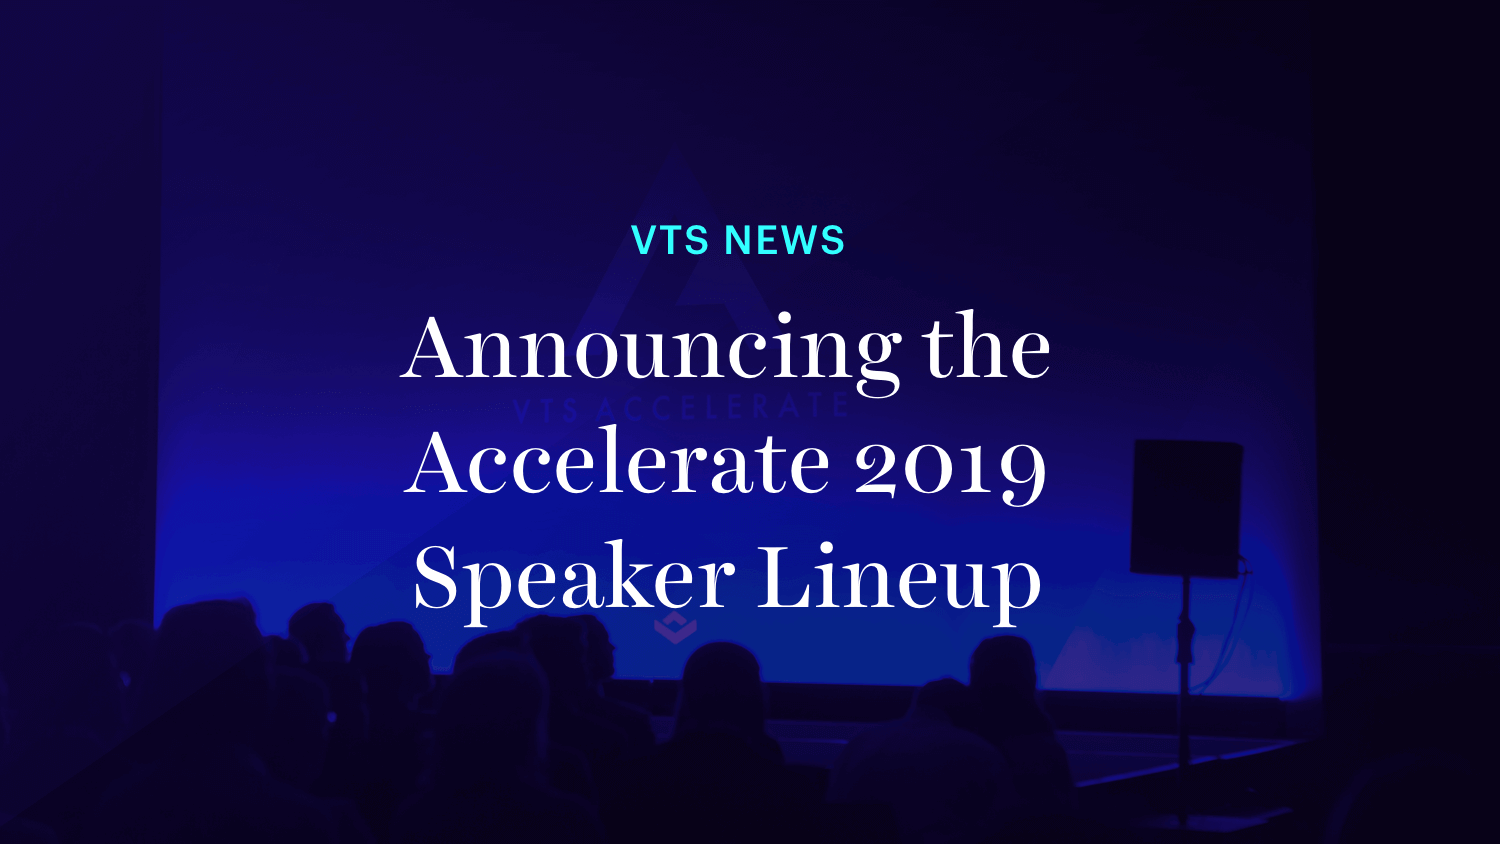 Announcing Our VTS Accelerate Speaker Lineup of World-Class Commercial Real Estate Leaders